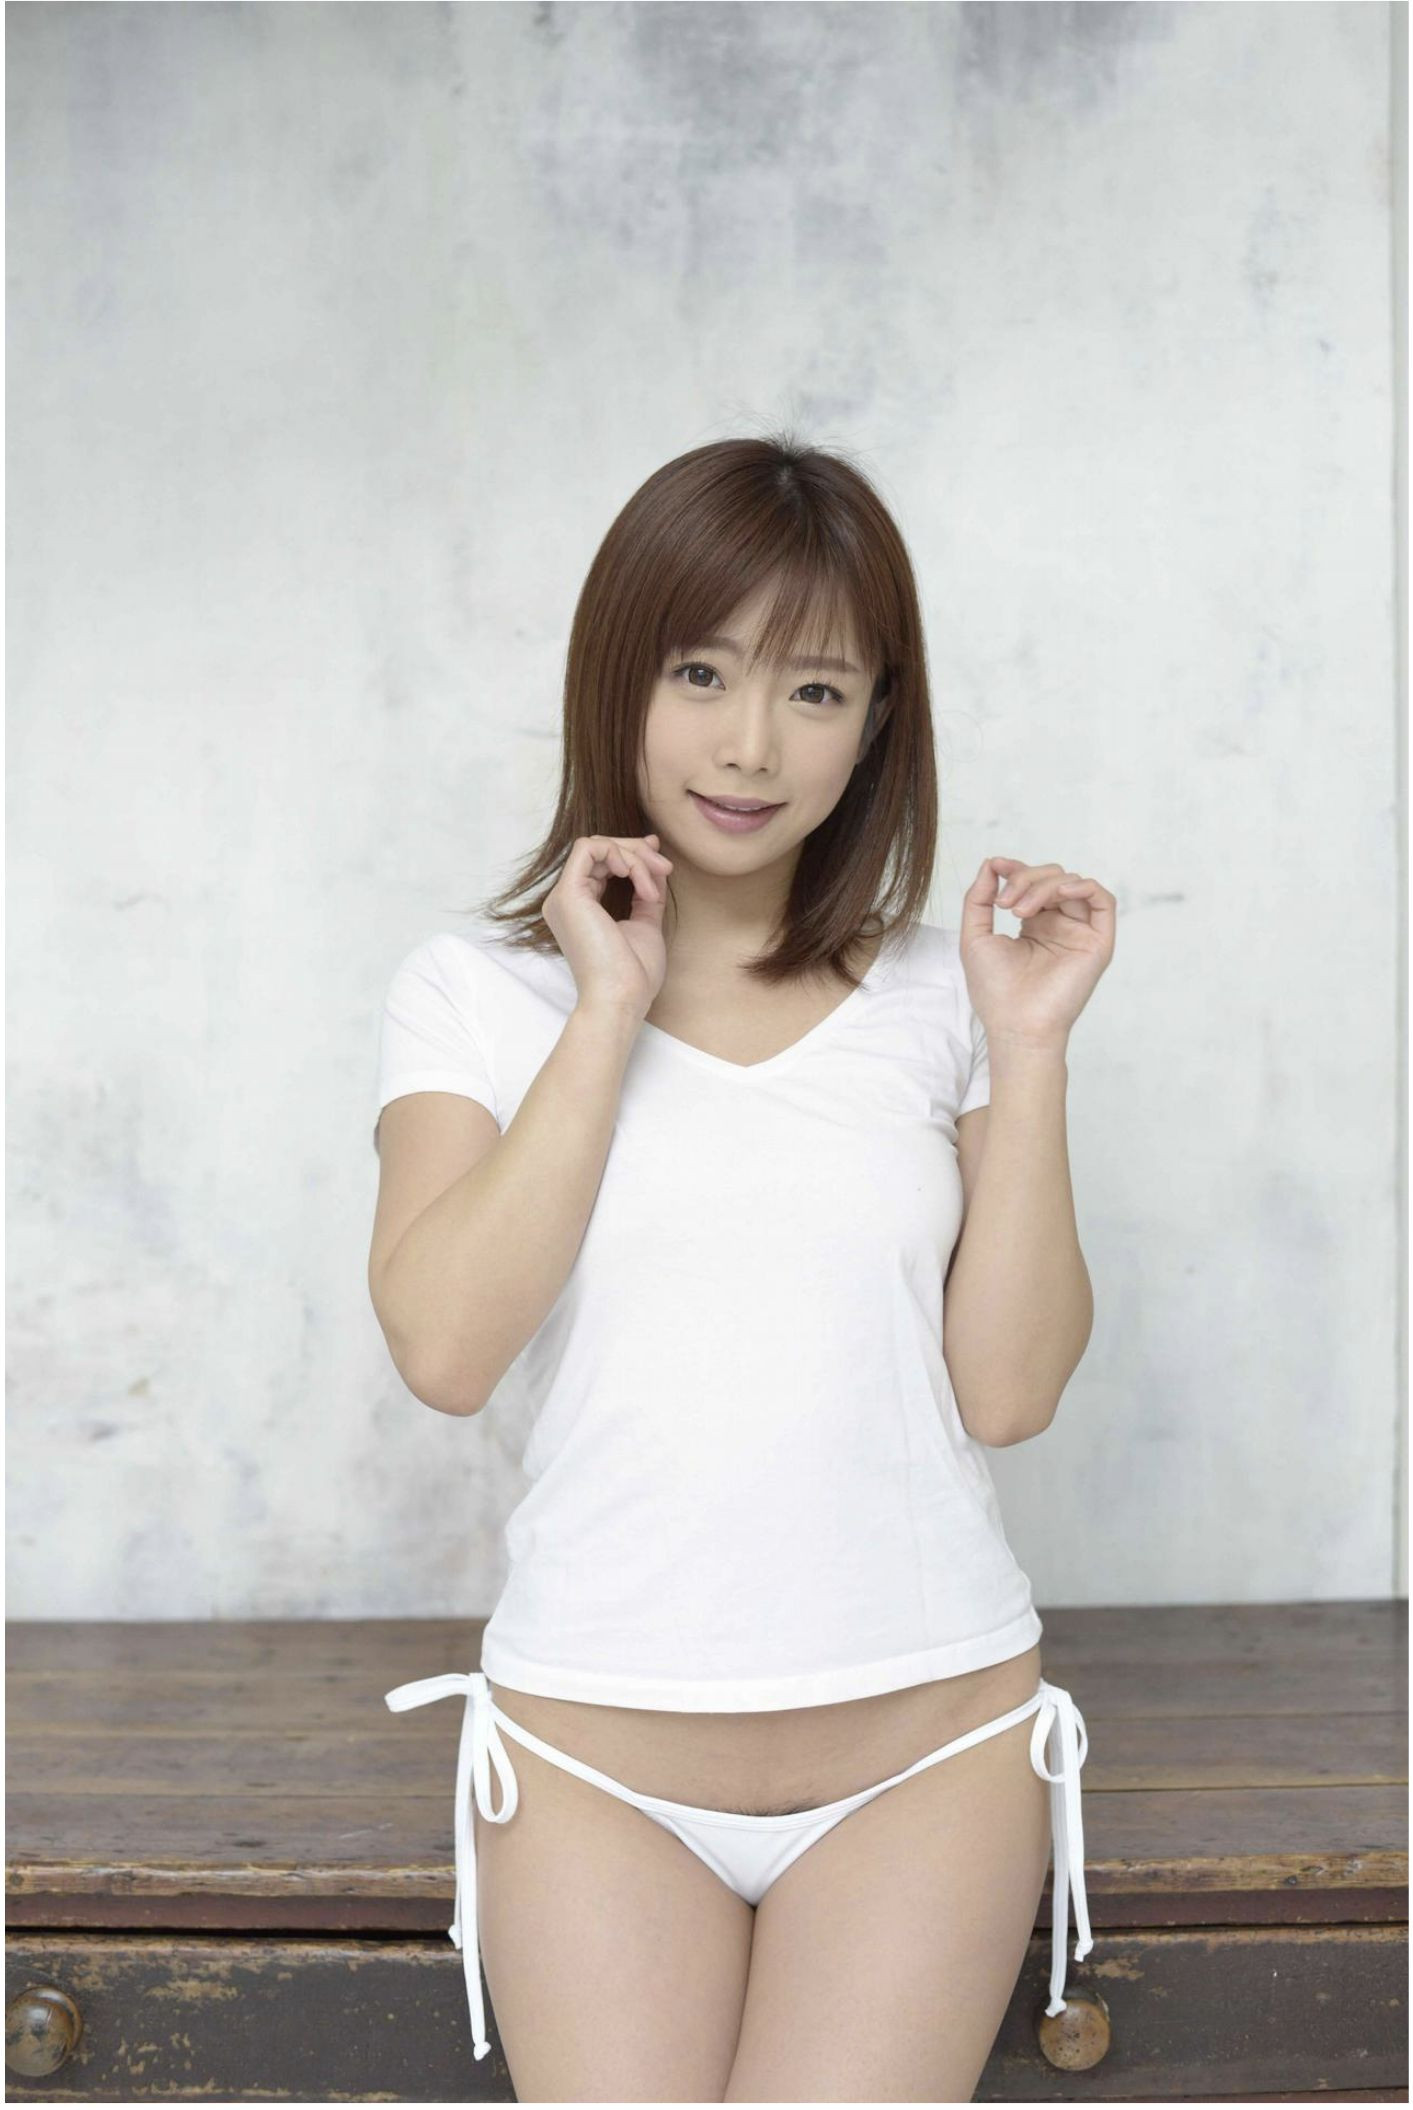 SOFT ON DEMAND GRAVURE COLLECTION 紗倉まな04 photo 003